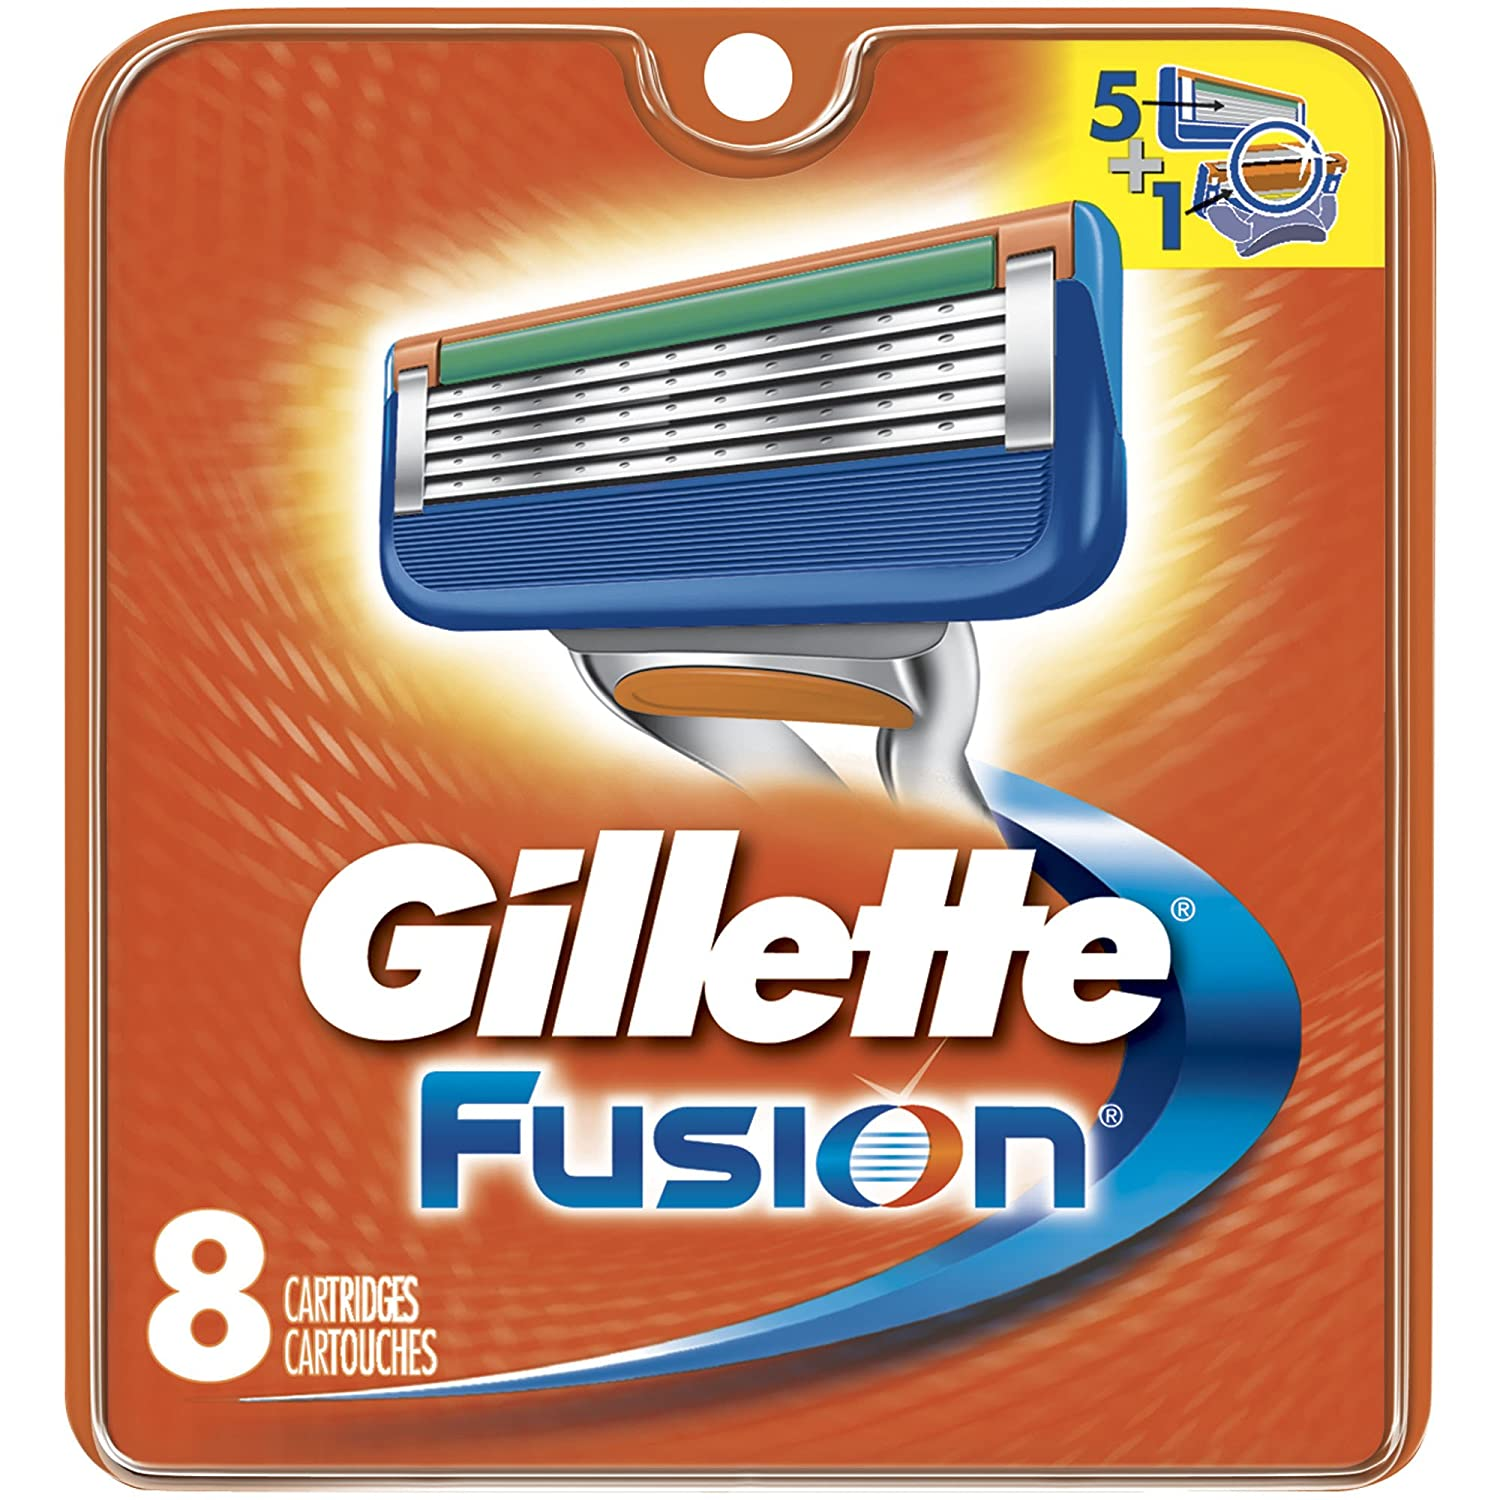 Gillette Fusion Manual Men's Razor Blade Refills, 8 Count, Mens Razors/Blades P & G 5659